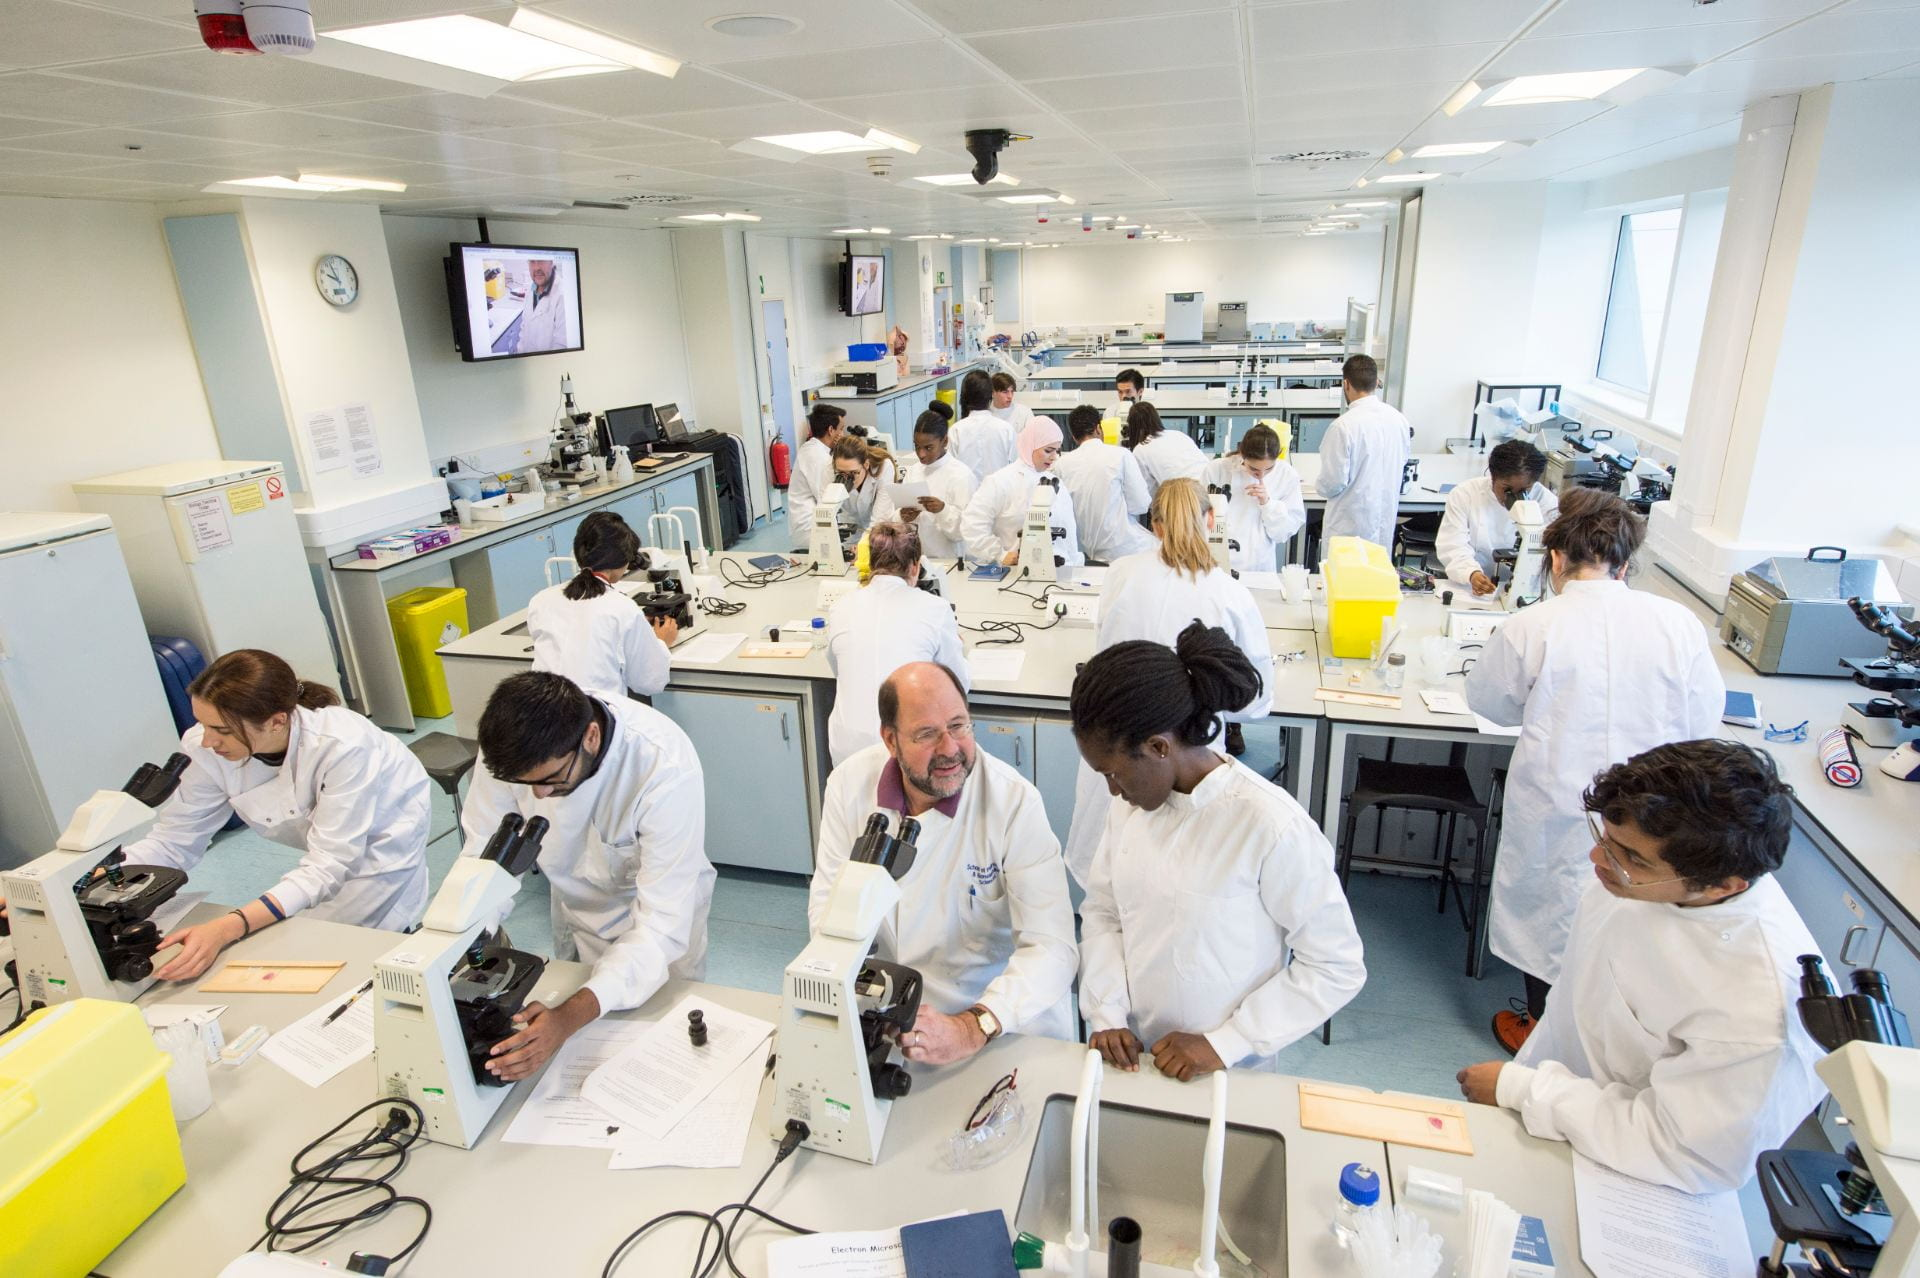 Students in lab coats working in a Microscopy lab